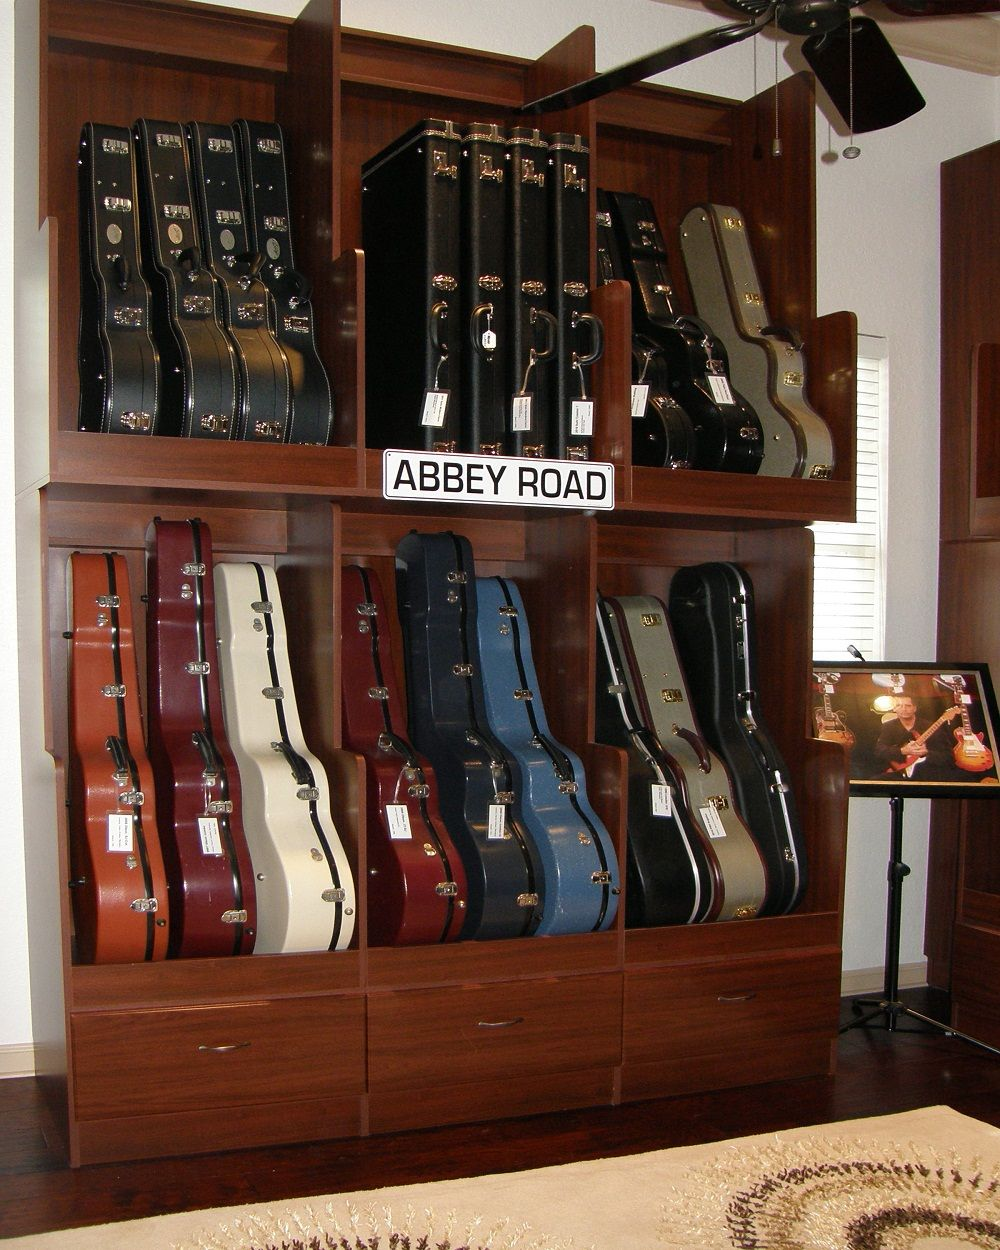 Top Shelf Design Awards #guitars| Cabinetsandclosetsexpo.com